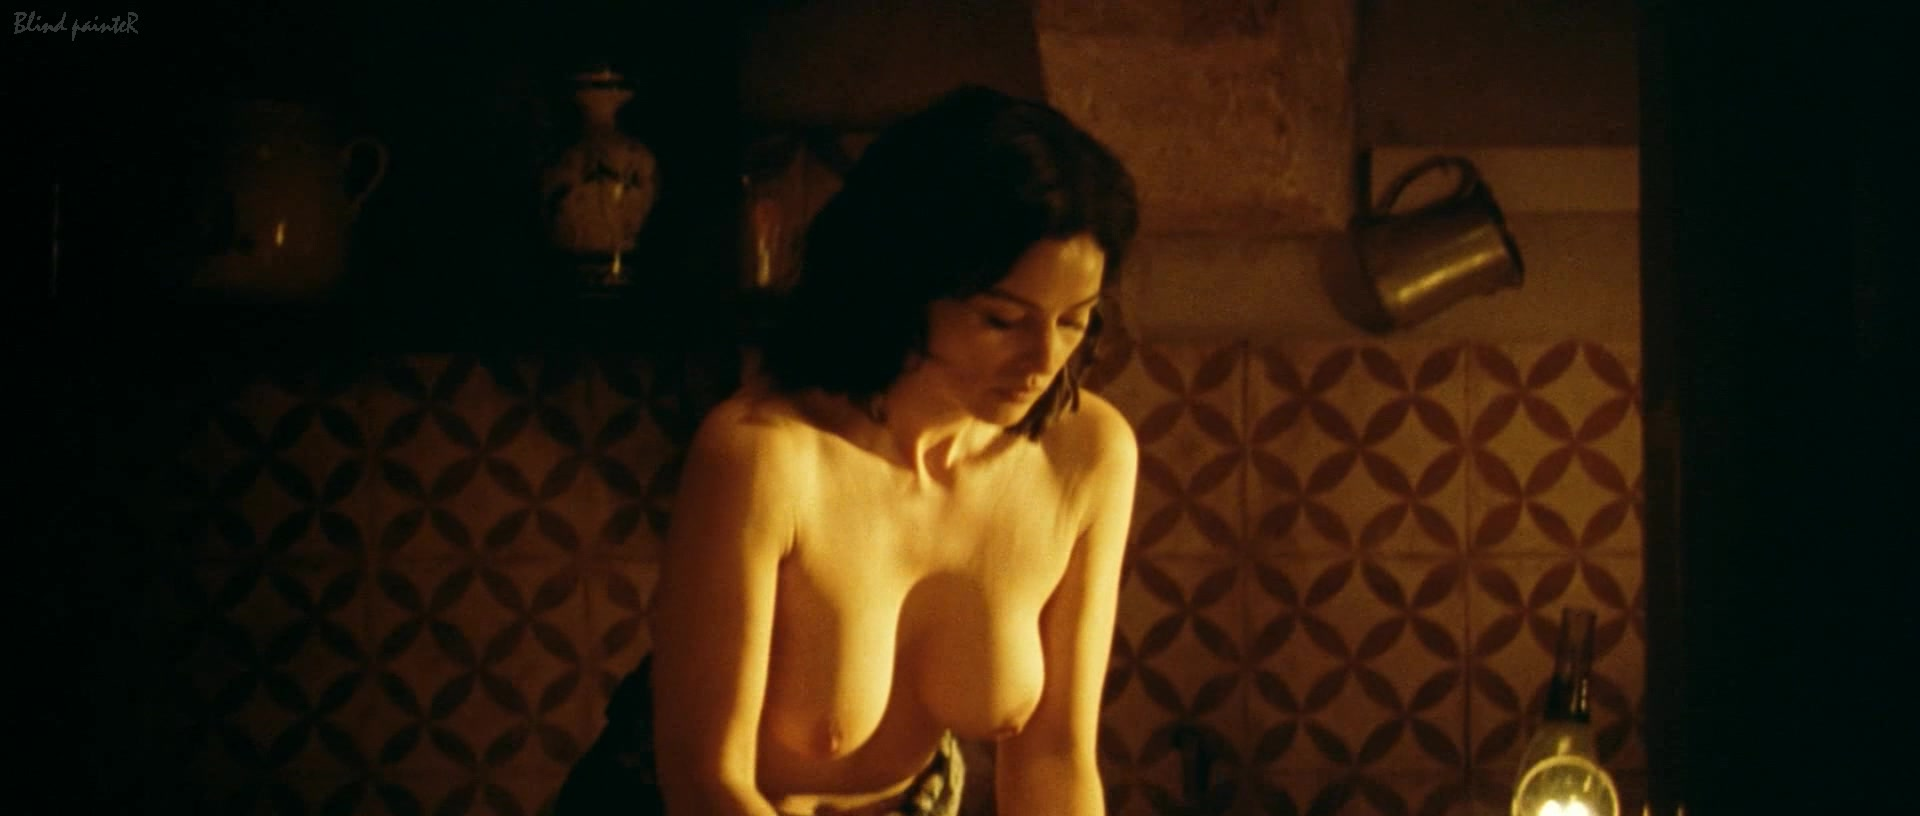 Monica bellucci erotic scenes